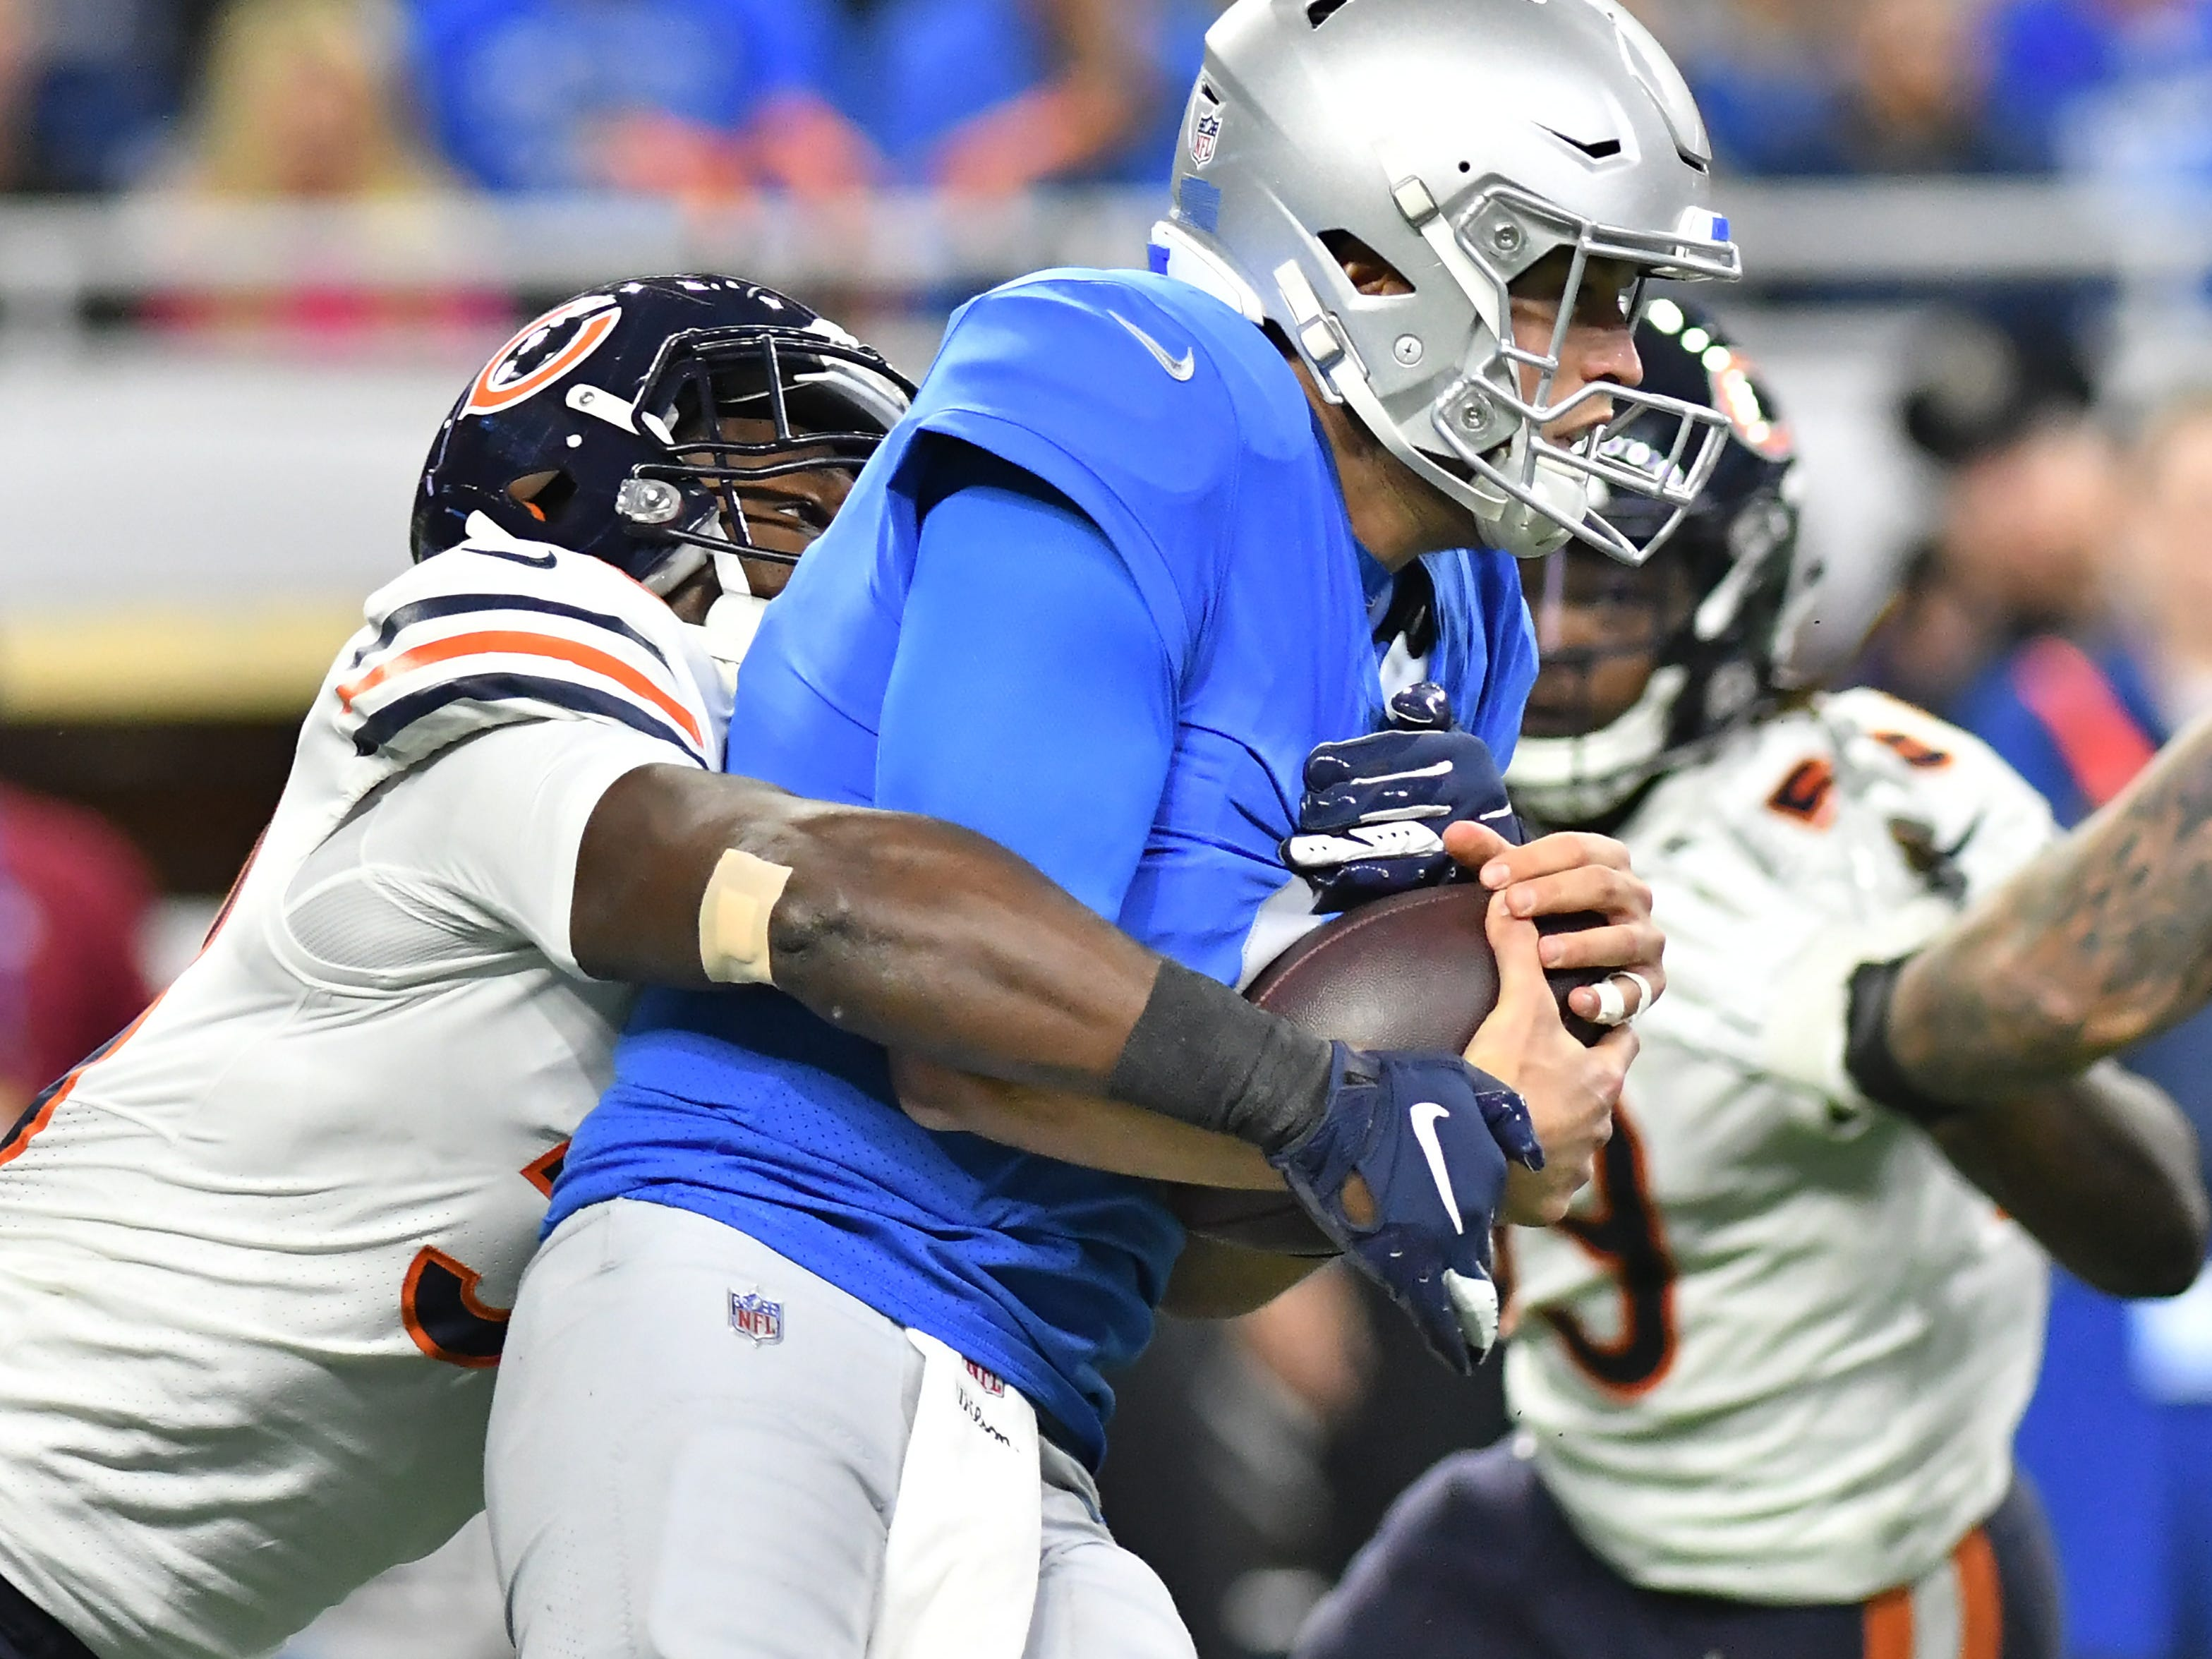 Bears' Roquan Smith comes in to sack Lions quarterback Matthew Stafford In the second quarter. Detroit Lions vs Chicago Bears on Thanksgiving Day at Ford Field in Detroit on Nov. 22, 2018. 